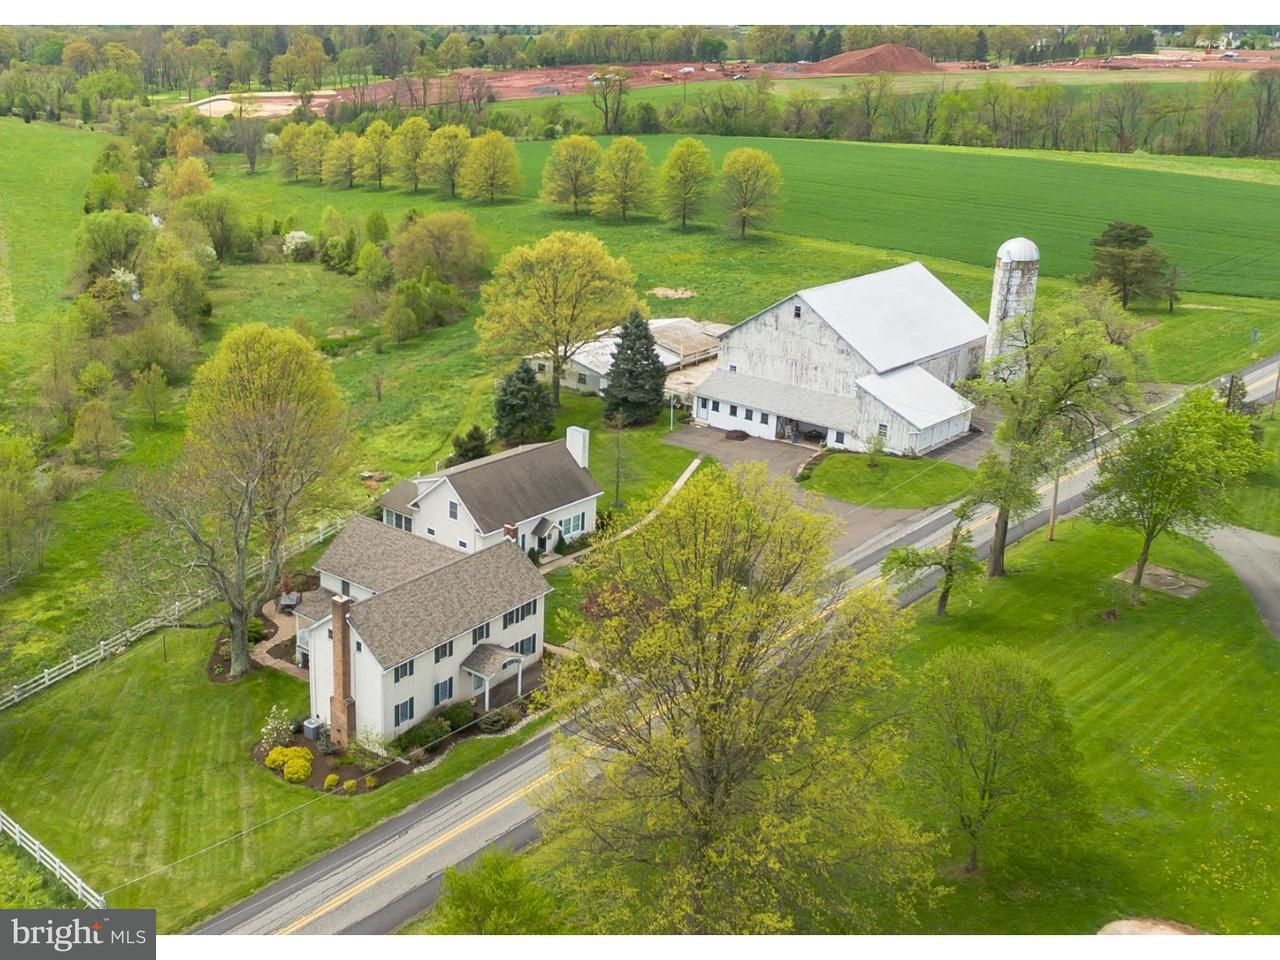 Single Family Home for Sale at 135 W LINFIELD TRAPPE Road Royersford, Pennsylvania 19468 United States